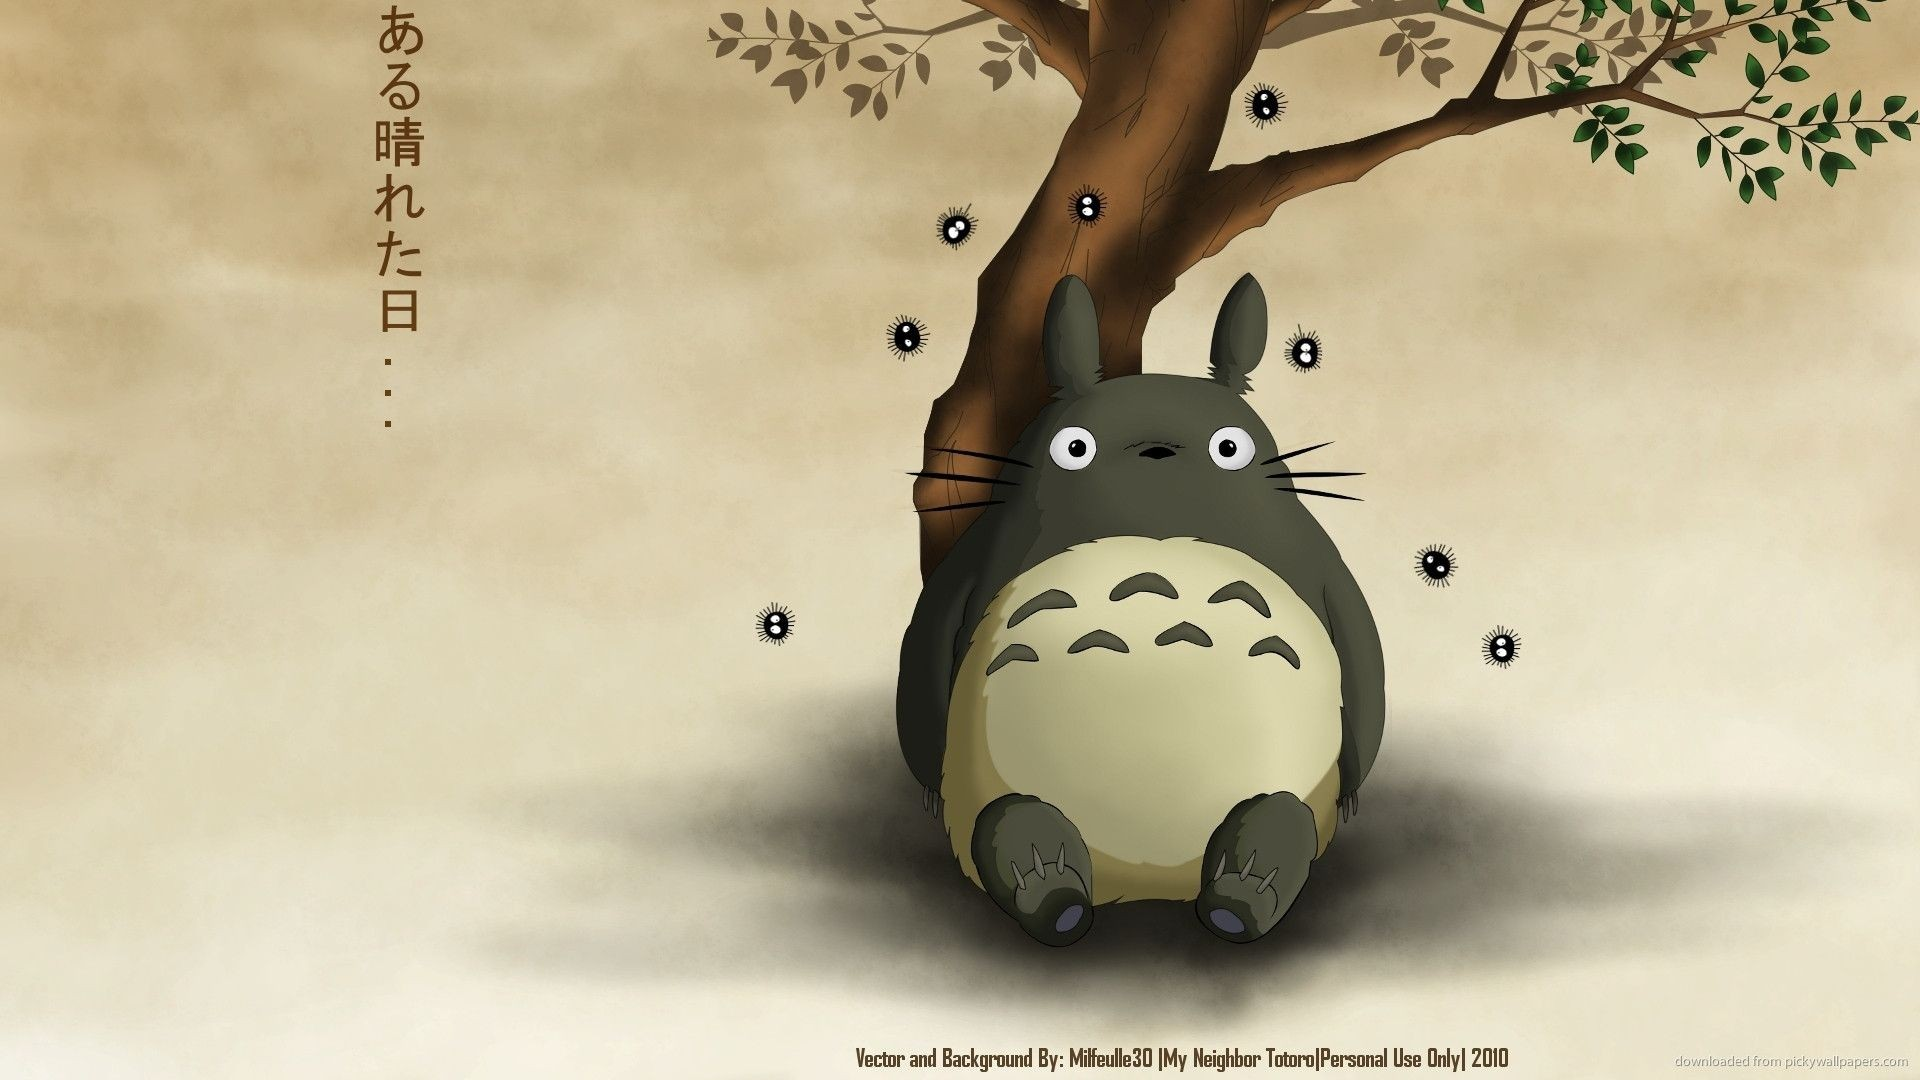 Totoro Wallpaper Iphone 6 My Neighbor Totoro Wallpaper 183 ① Download Free Beautiful